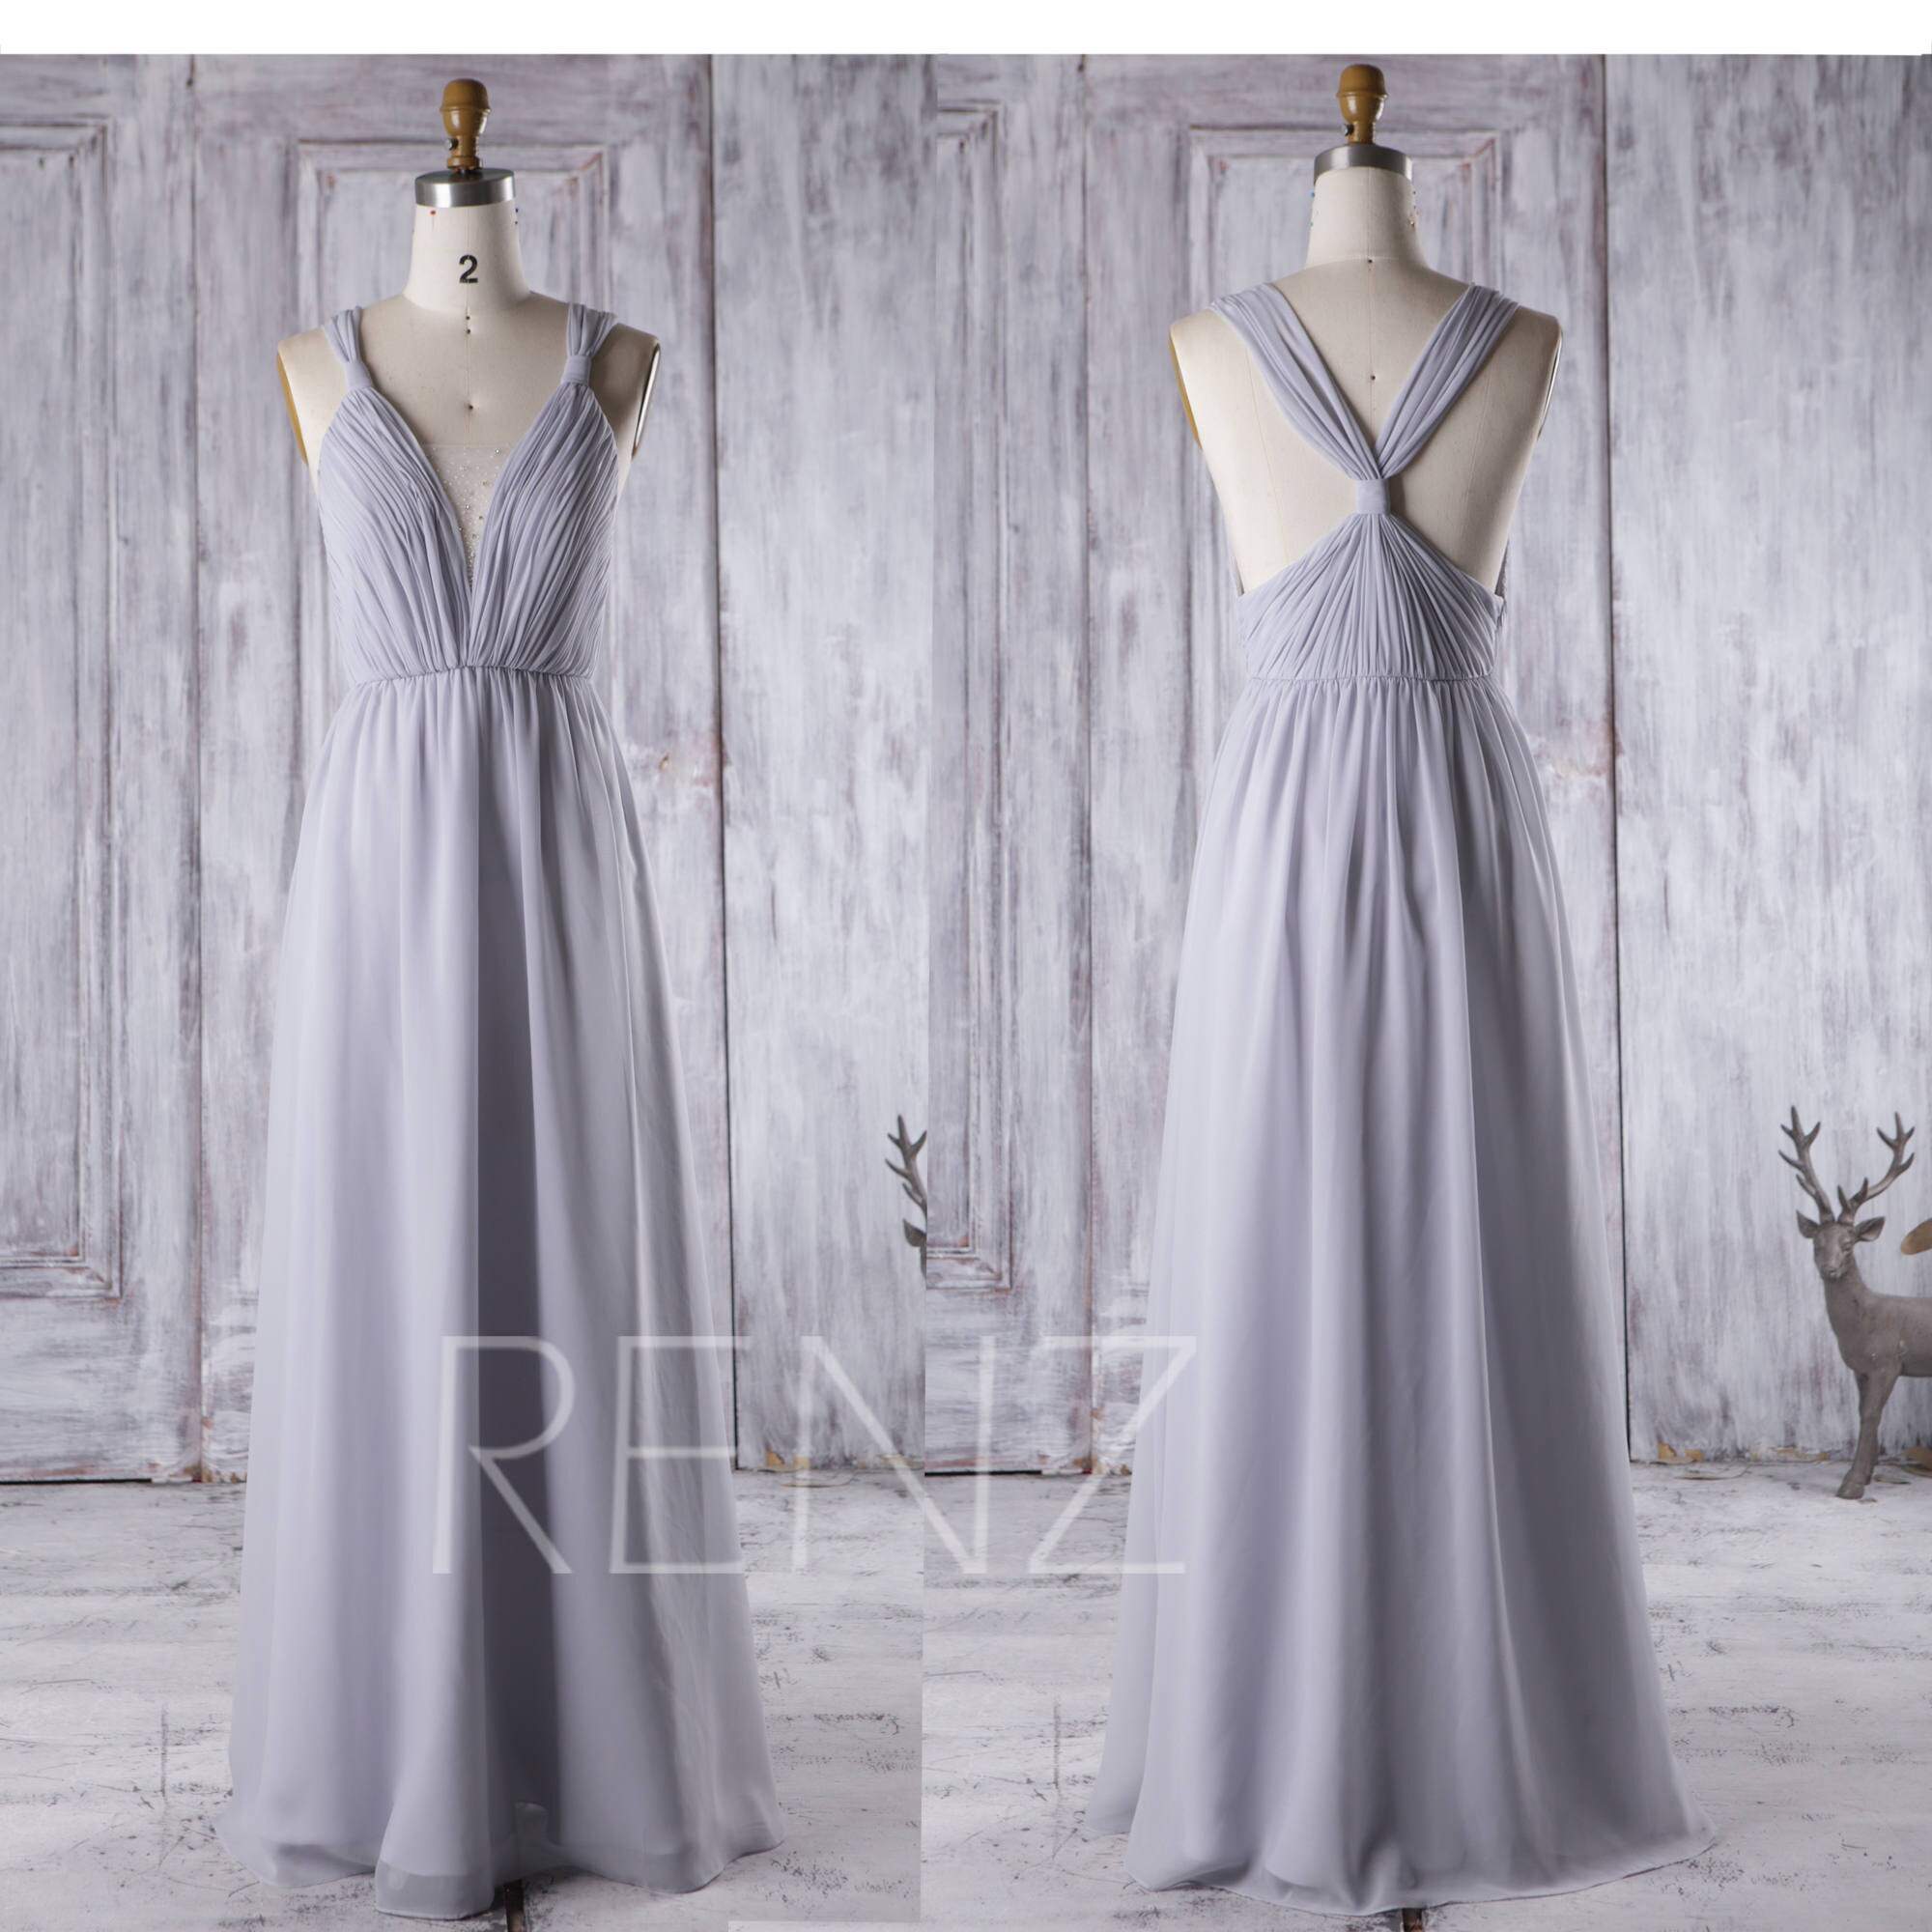 828d1d3b093 Light Gray Wedding Dresses